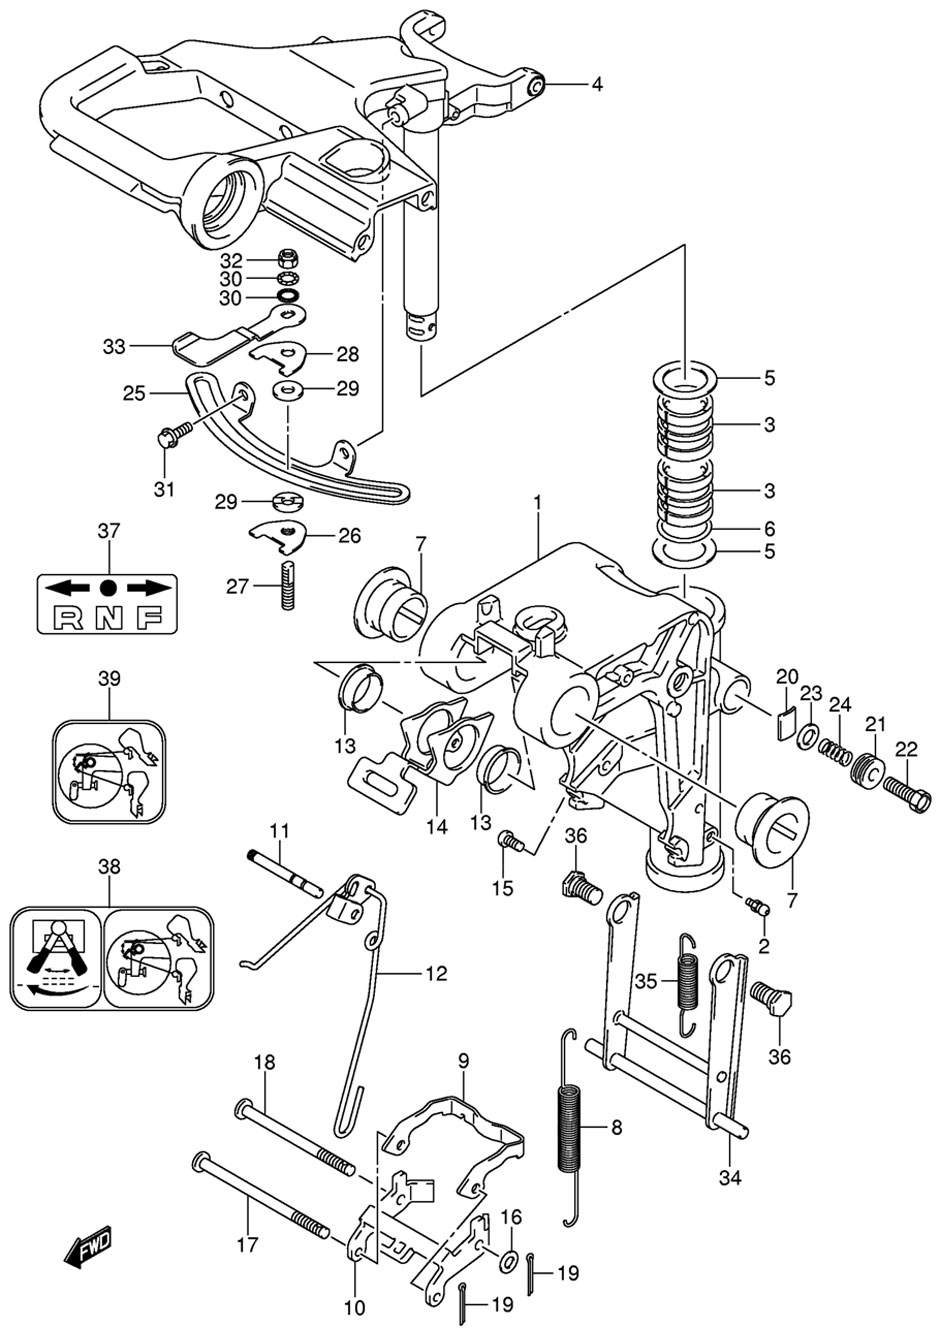 Suzuki Df S K Swivel Bracket likewise Maxresdefault also Johnson Outboard Parts Cylinder To Hp as well  further Maxresdefault. on 90 mercury outboard wiring diagram